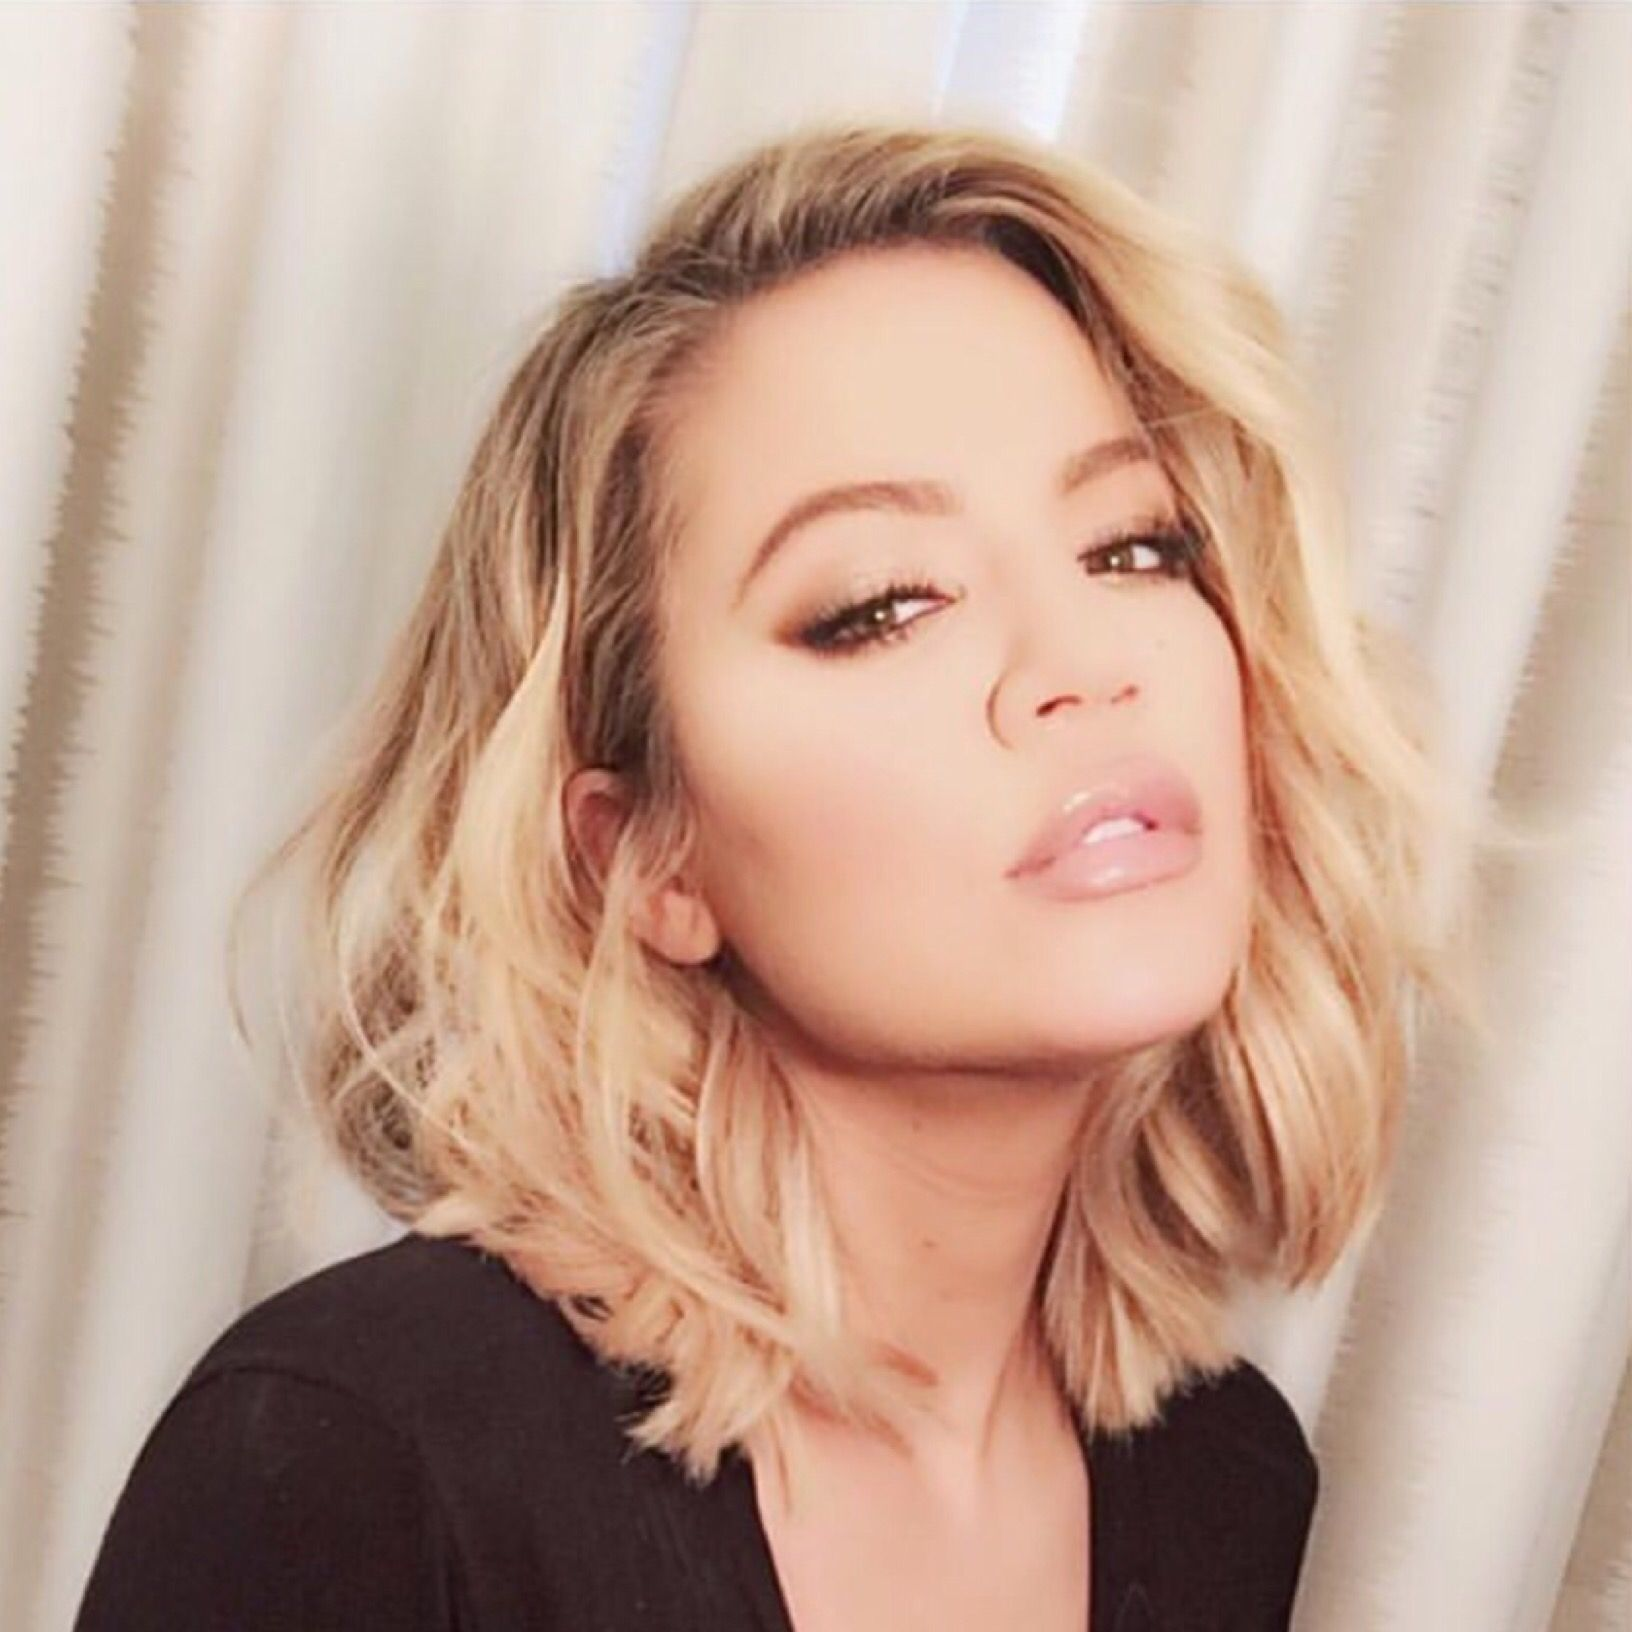 New Hair Alert Khloe Kardashian Serves Hotness With Her New Cut